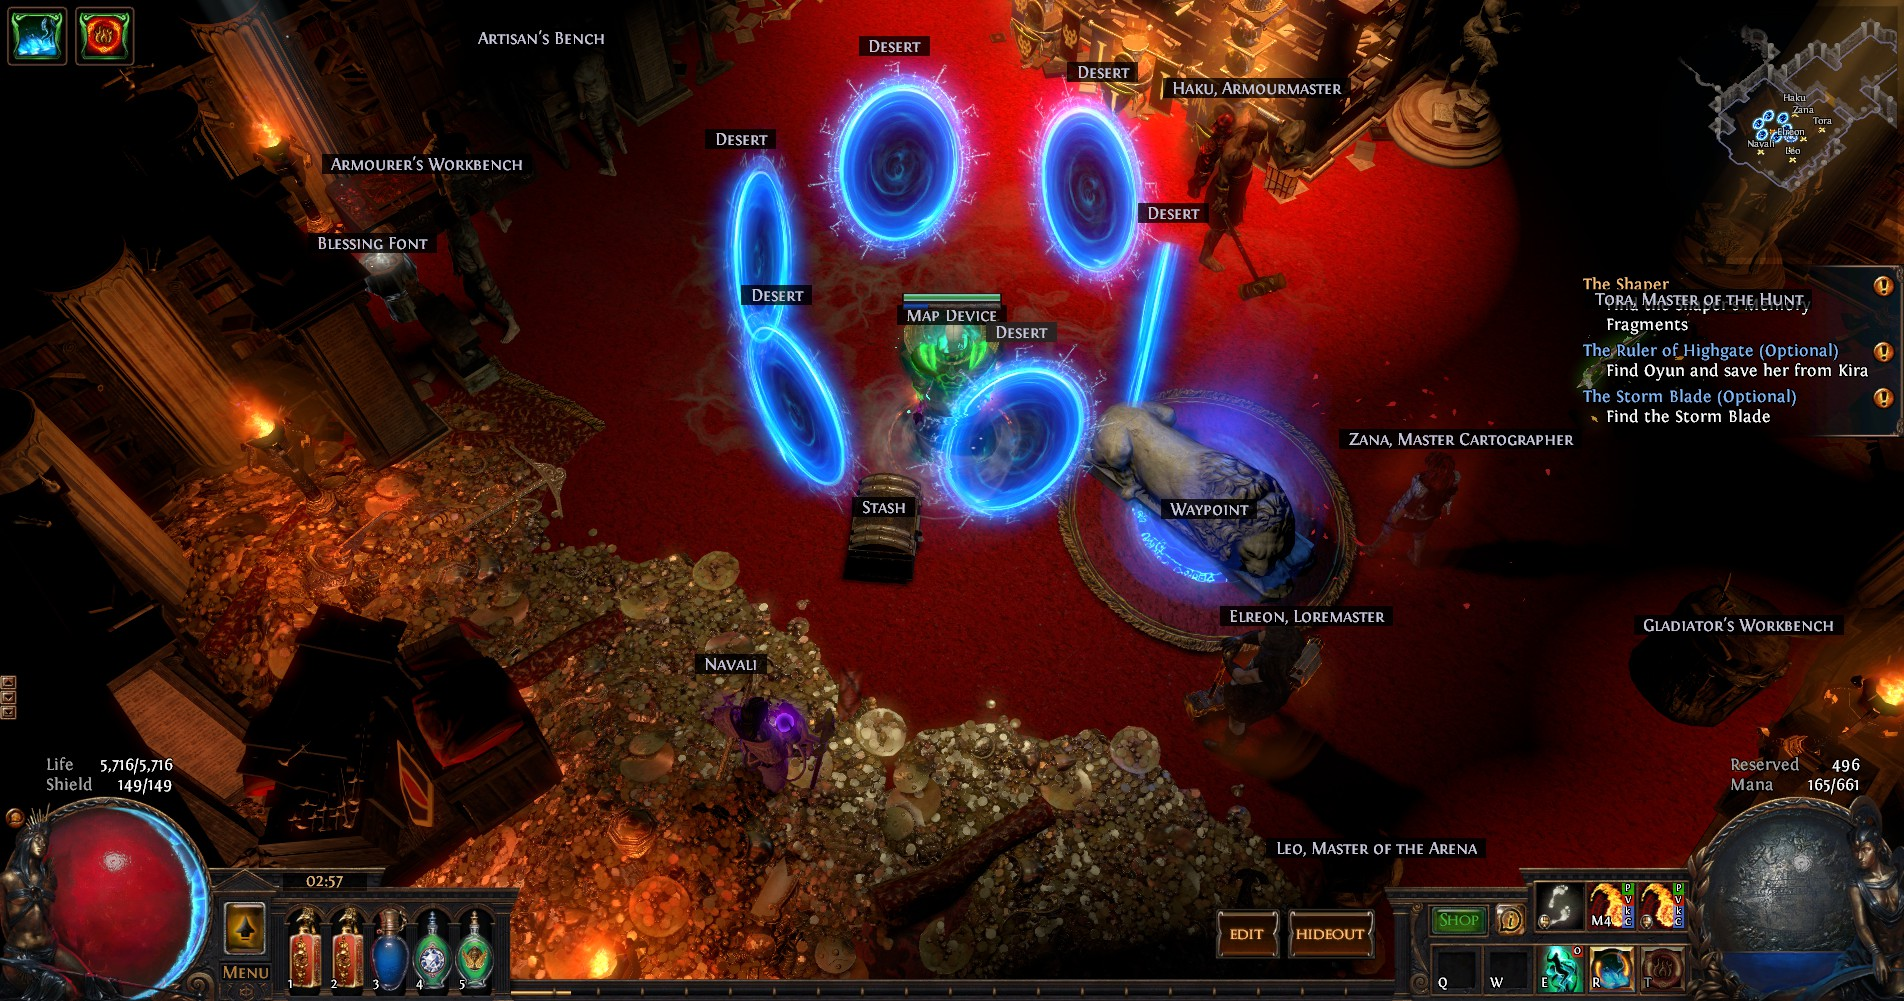 Steam Community :: Guide :: Path of Exile 100% achievements guide!